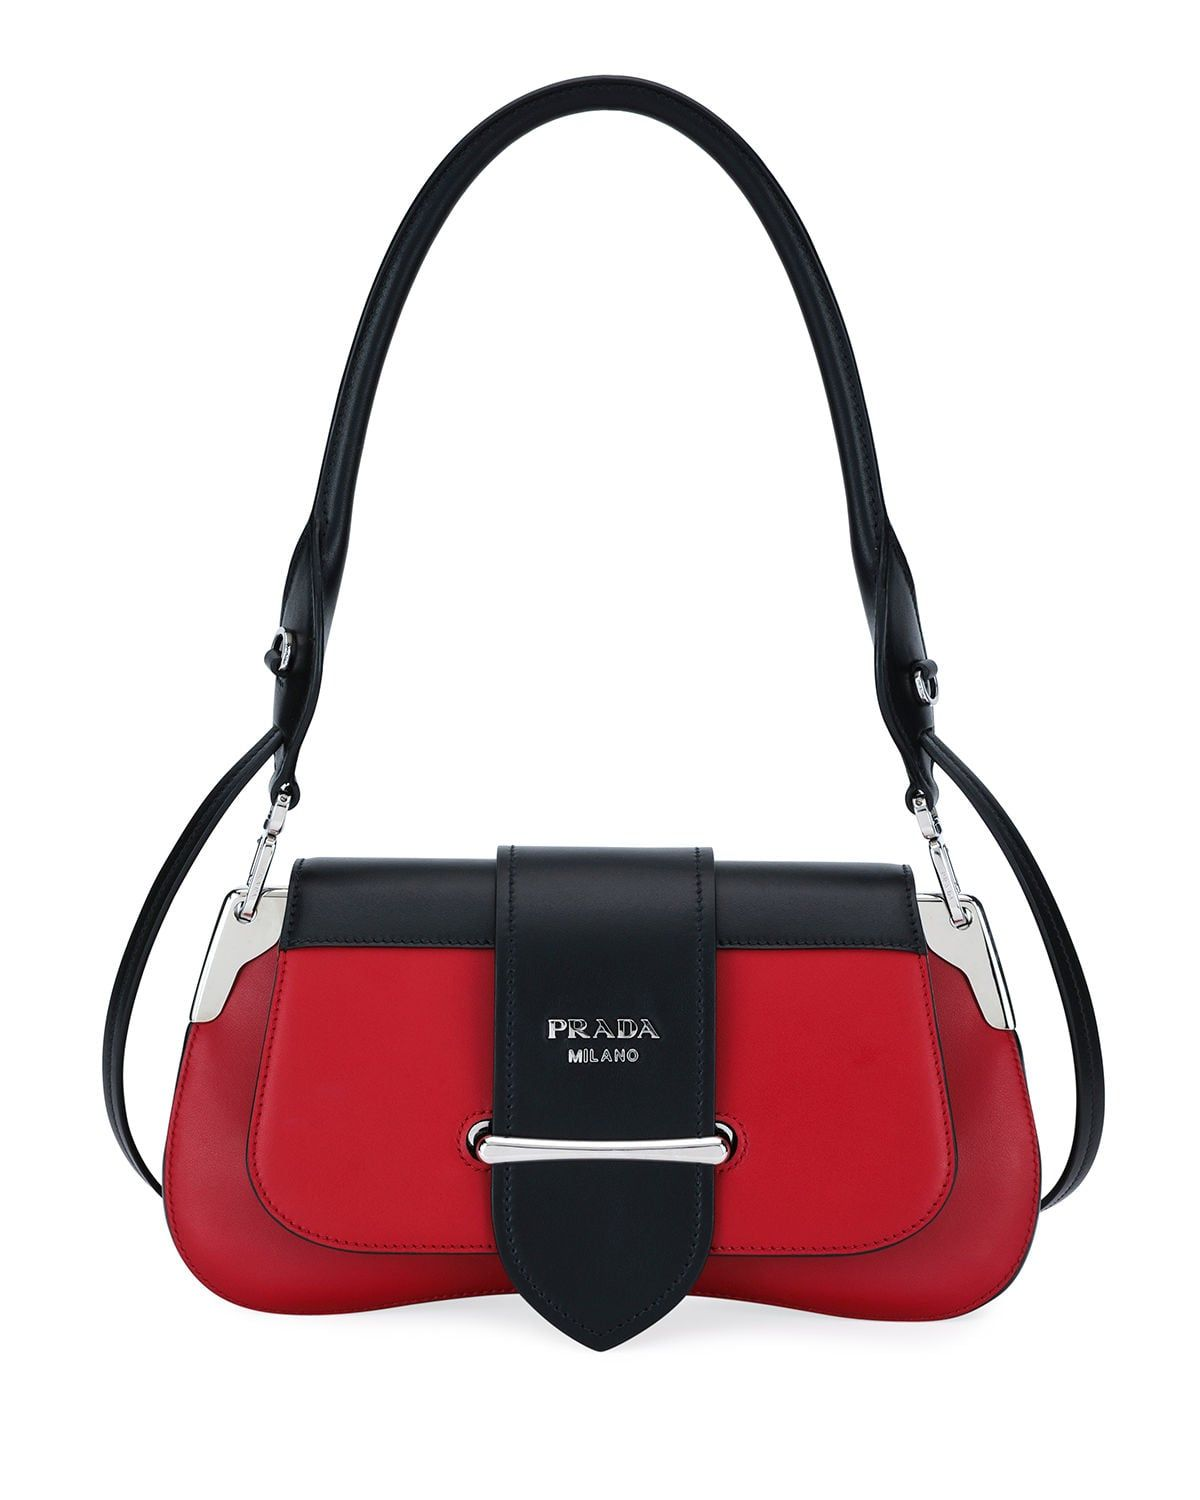 5de73402147cb7 Prada Sidonie Shoulder Bag | Fall 2019 Winter 2020 | Bags, Prada bag ...